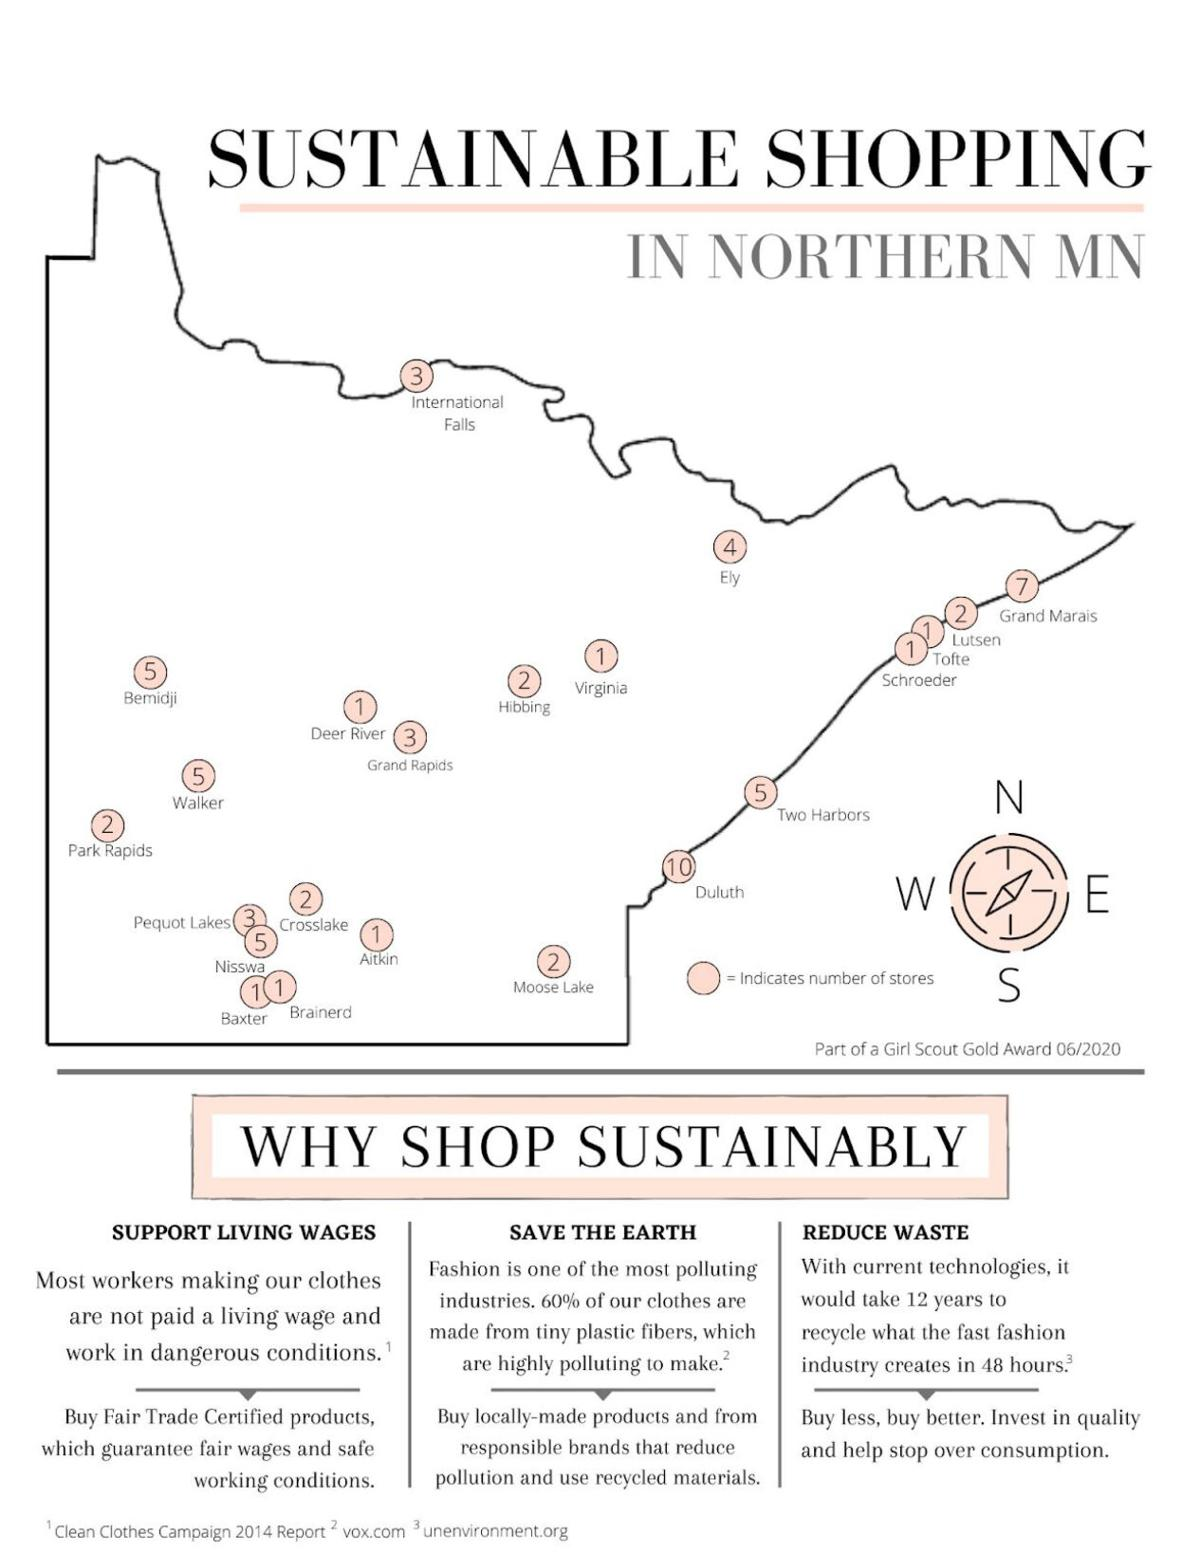 Sustainable Shopping Maps Now Available for Northern Minnesota